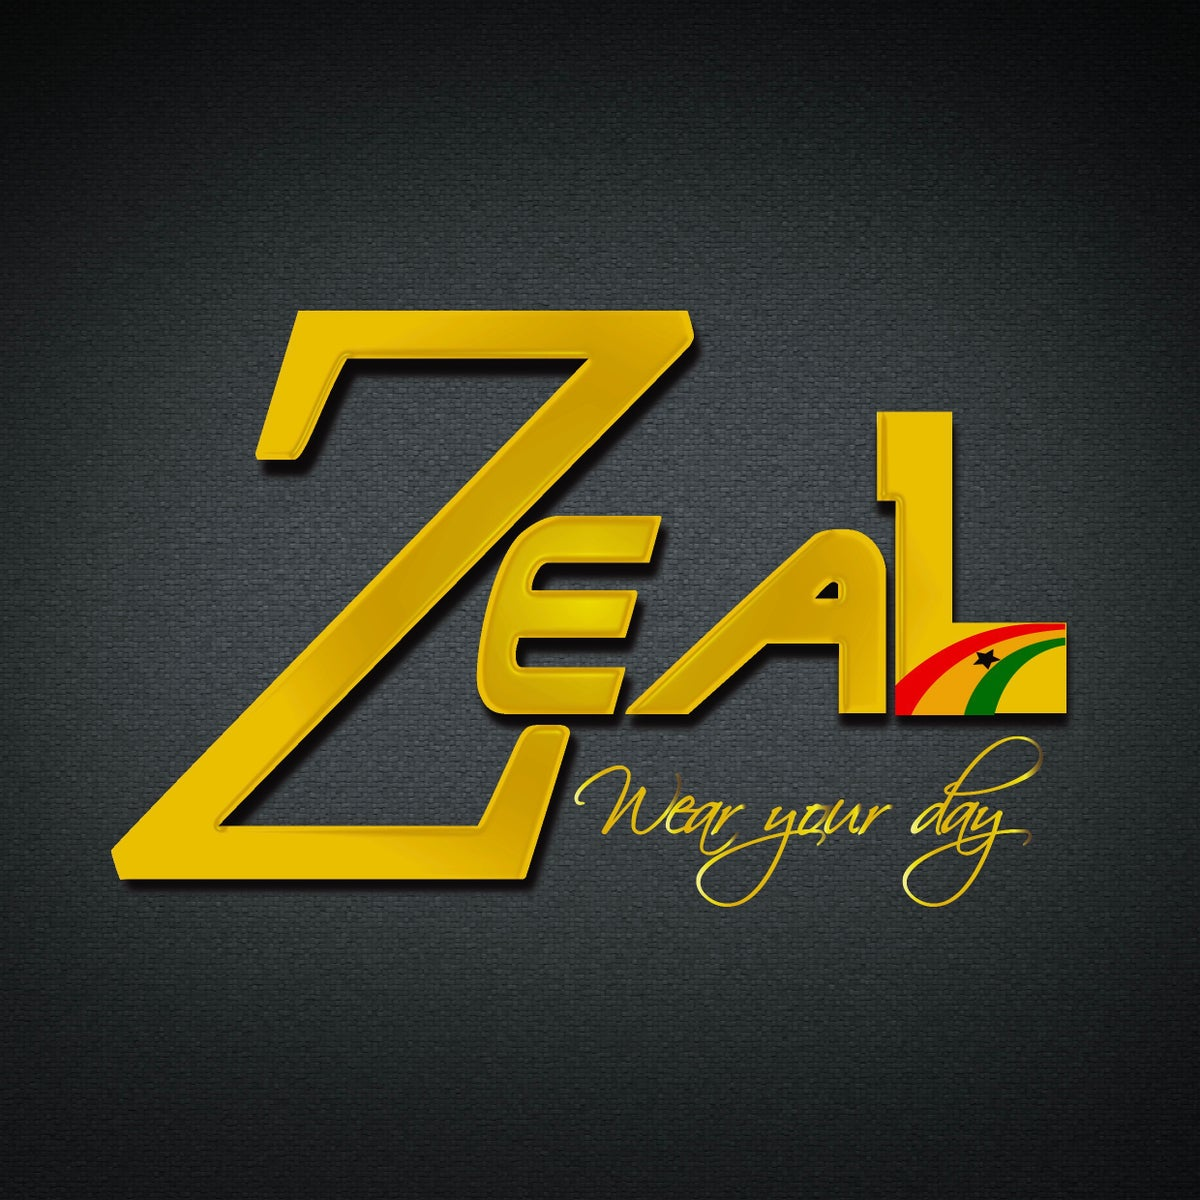 Image of ZEAL WEAR YOUR DAY NECKLACE - AFUA (FRIDAY)